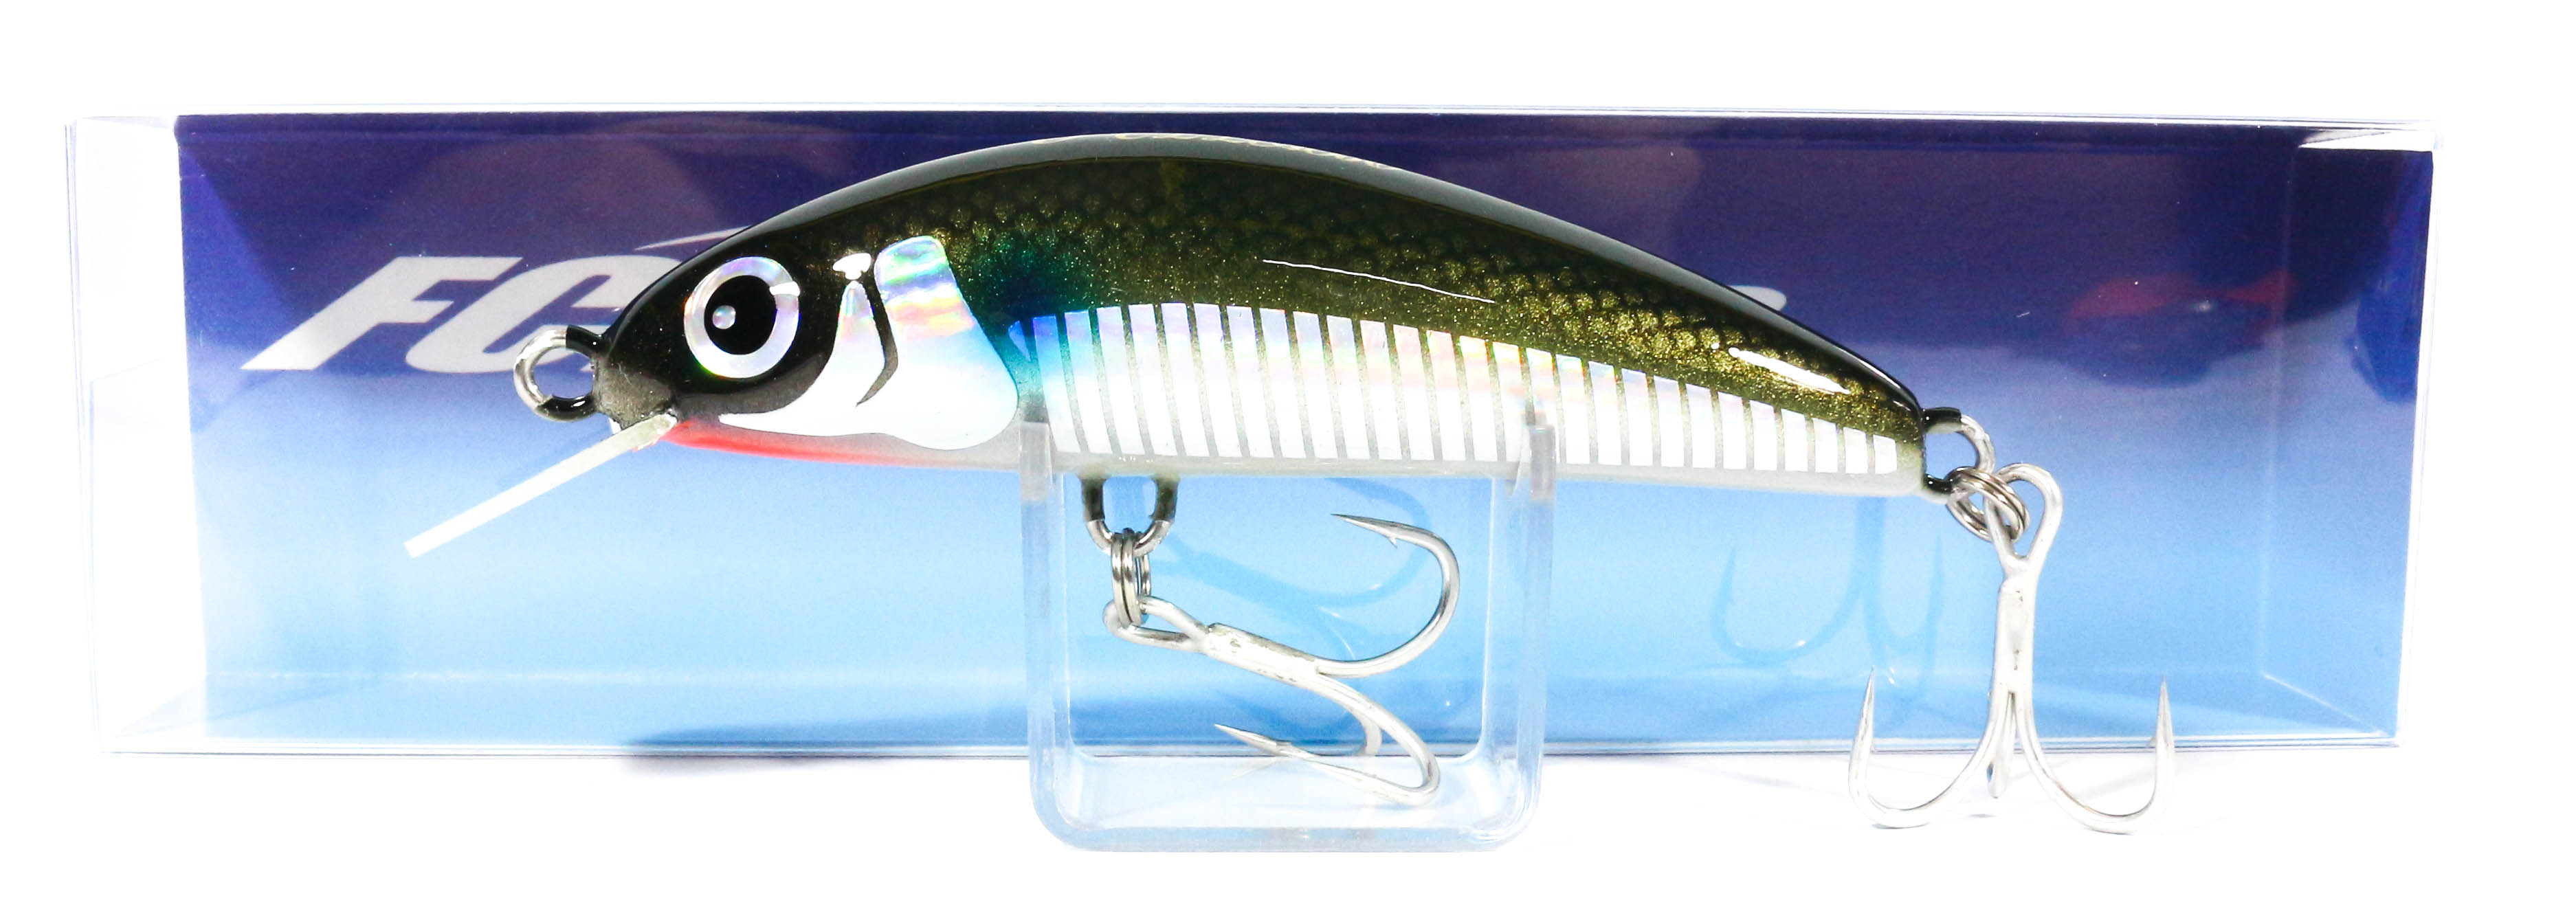 FCL Labo Lure HKTS 82S Sinking Lure 18 grams BR (3054)